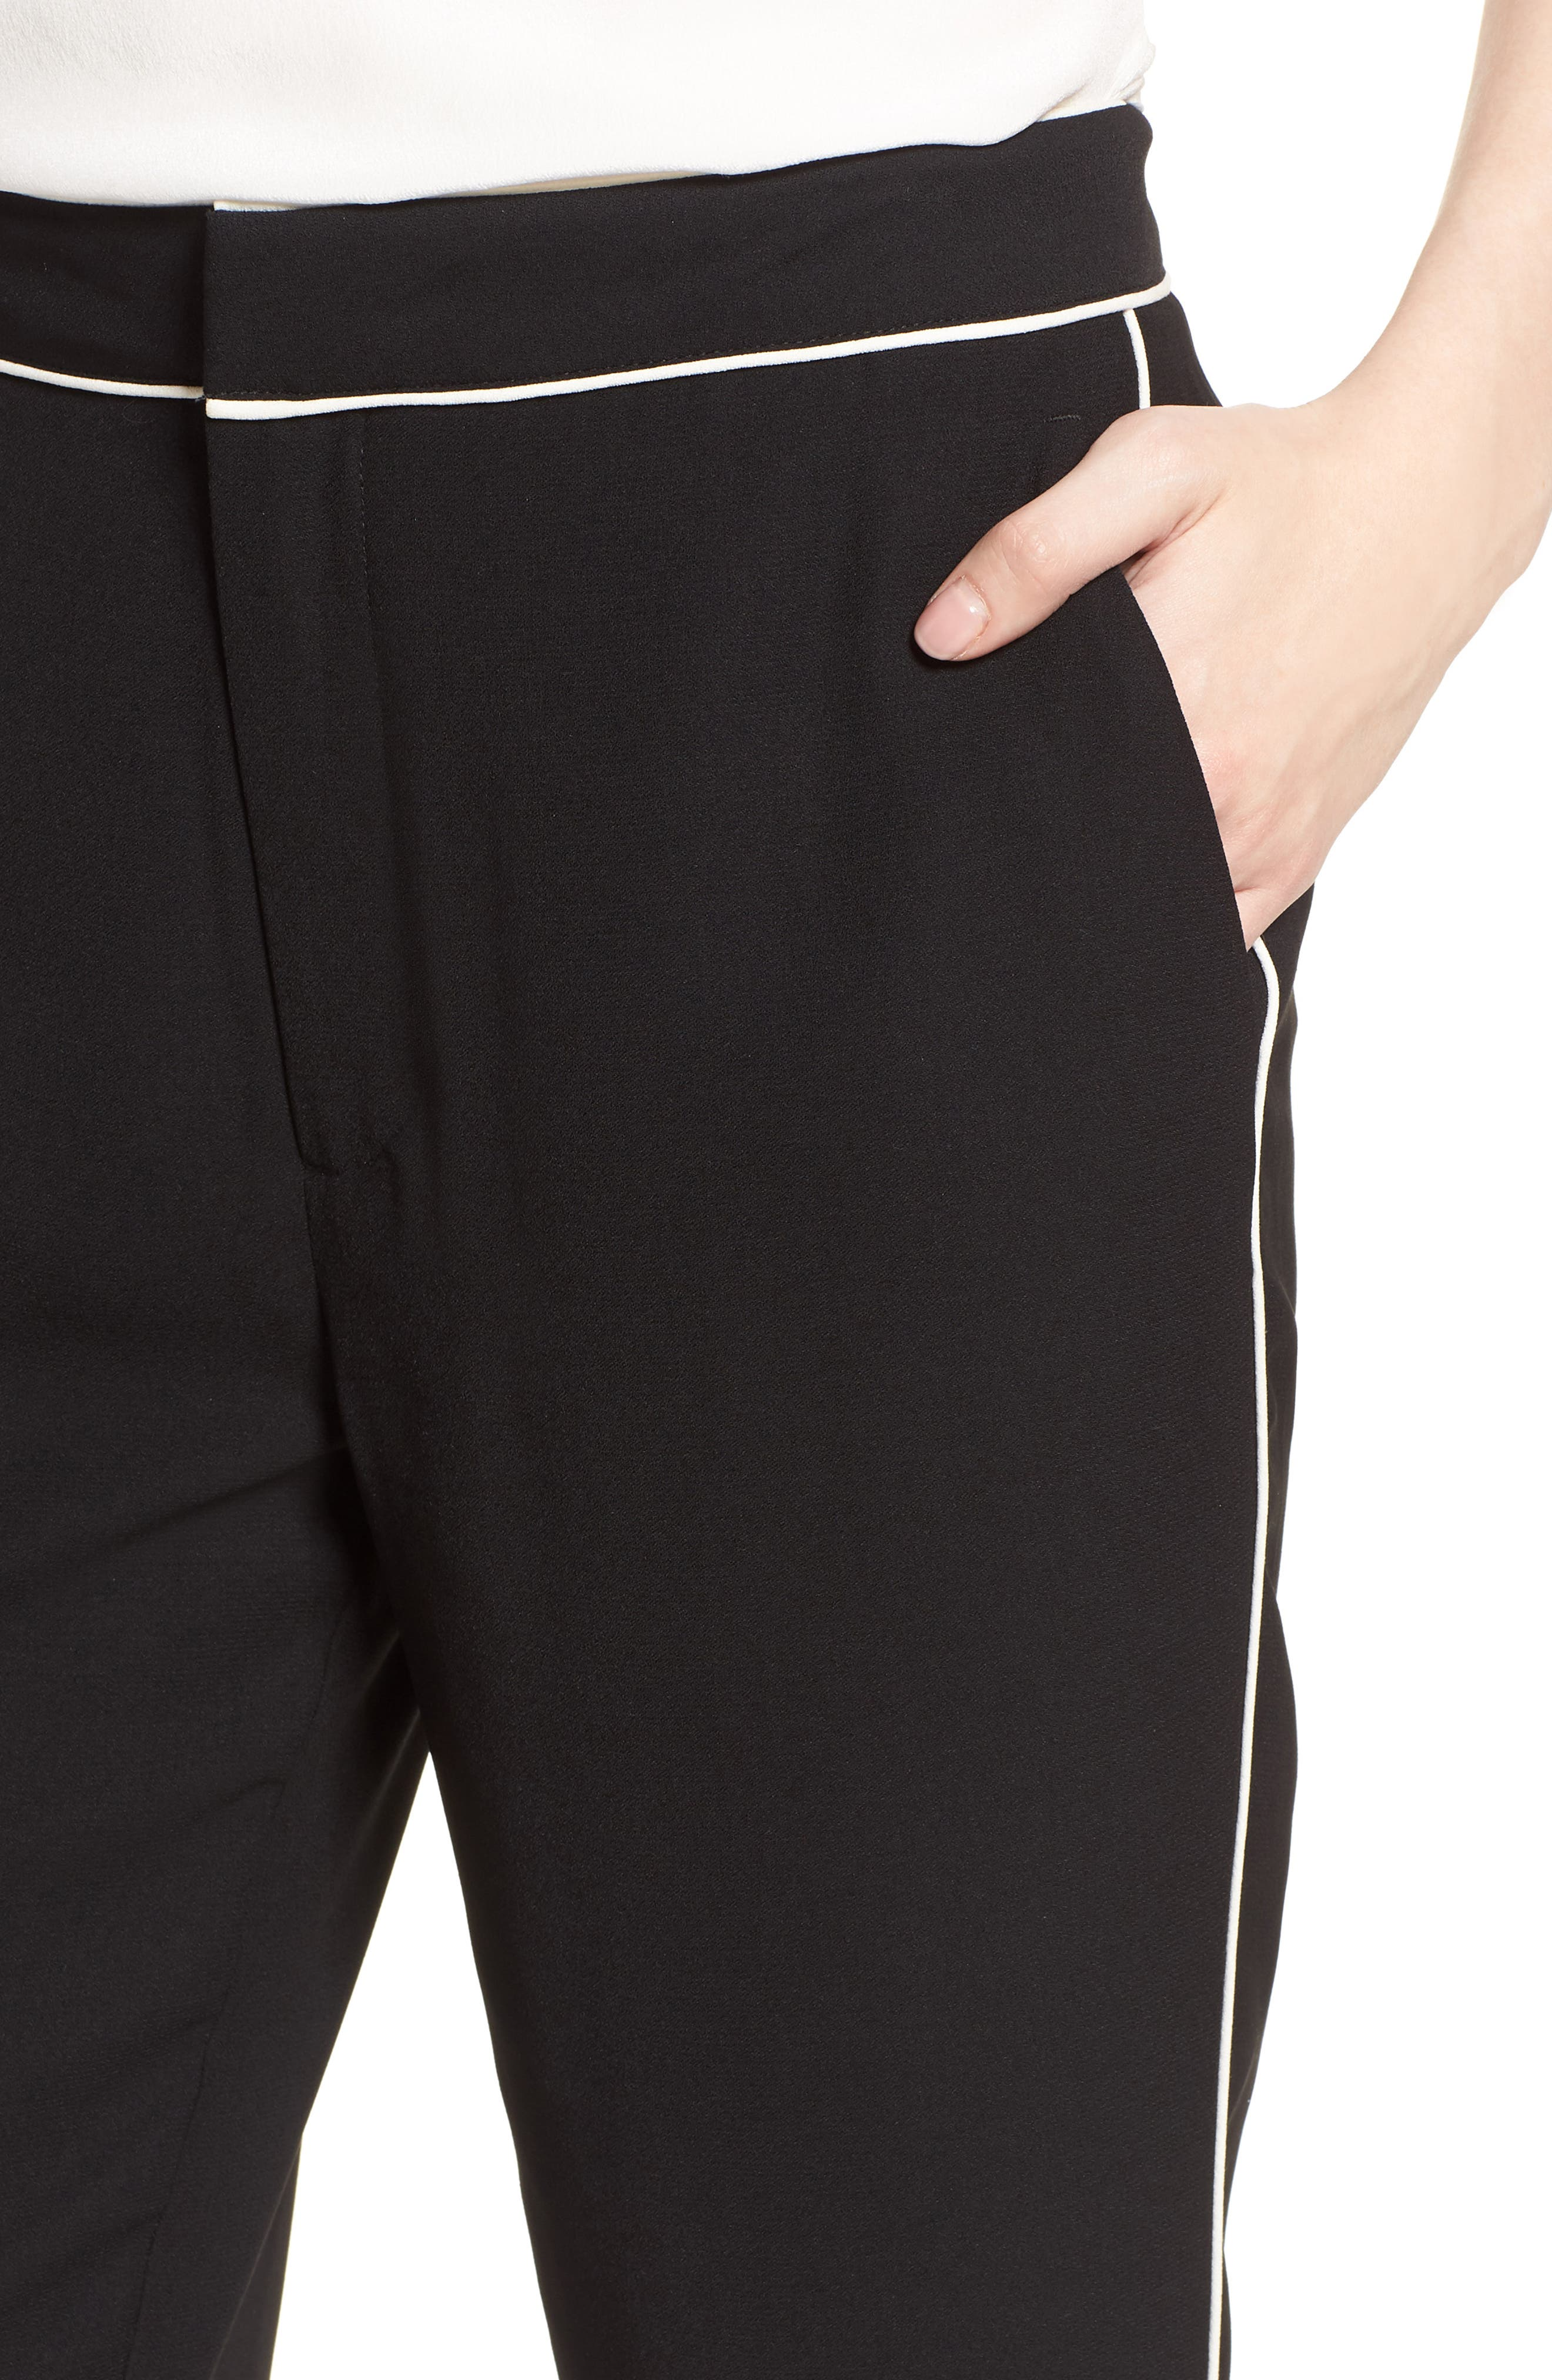 Ankle Pants,                             Alternate thumbnail 4, color,                             Black/ Bright White Piping